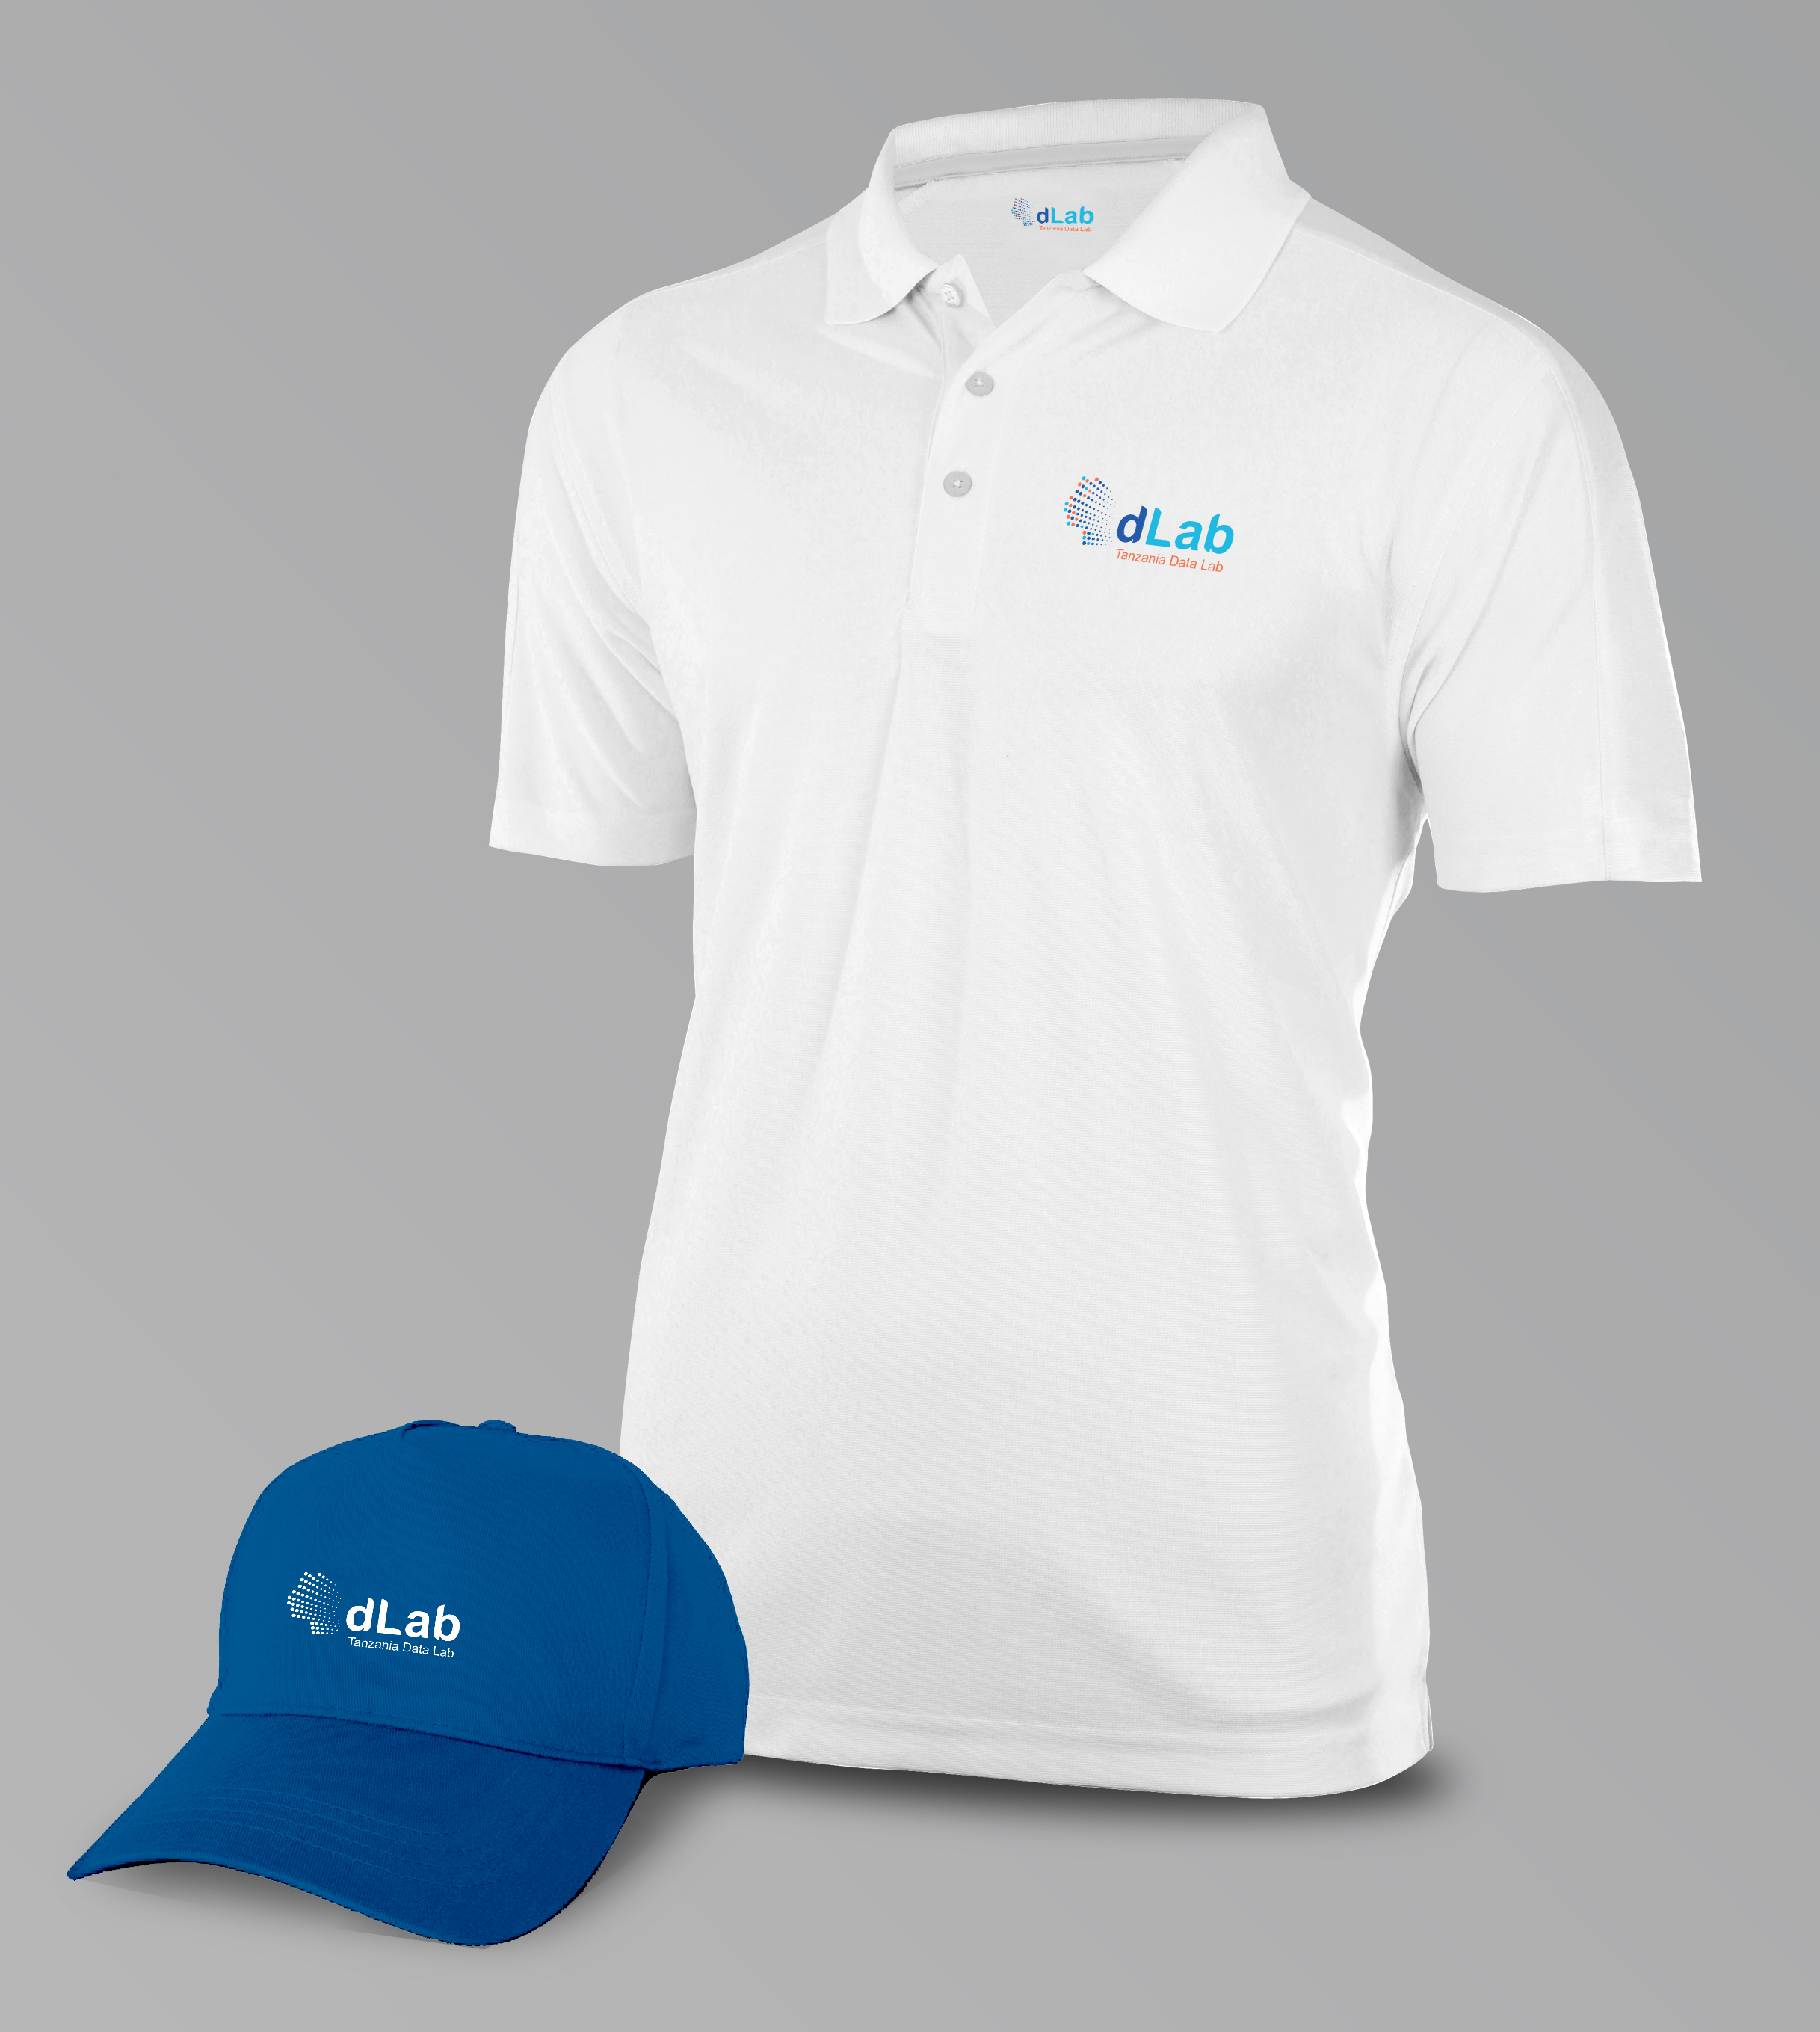 dLab logo on Tshirt and Caps